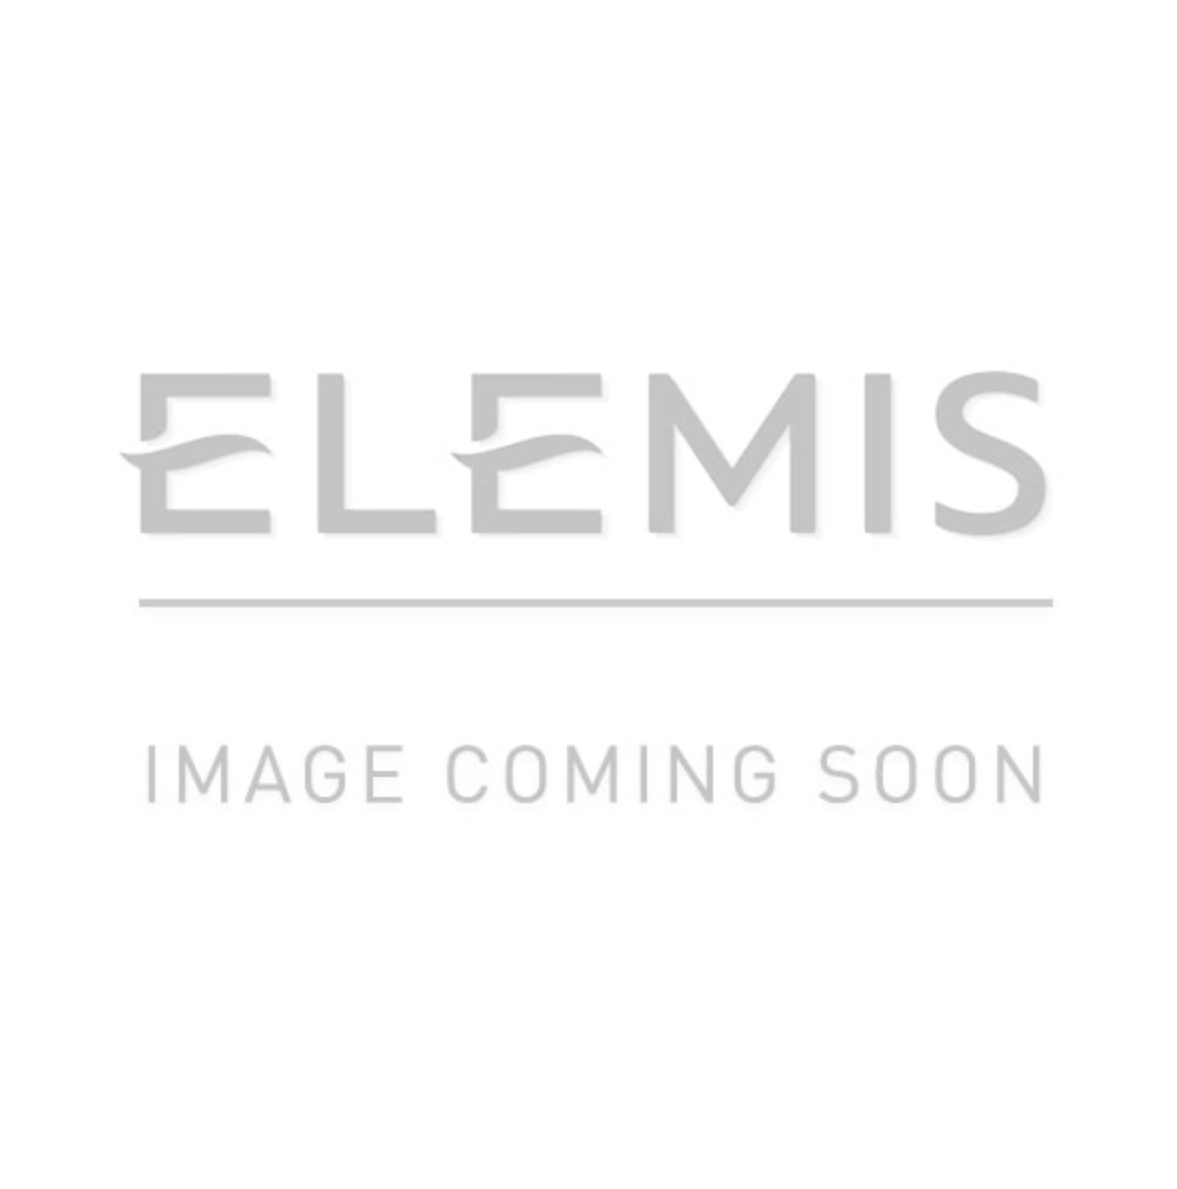 Christmas Gifts For Her 2019.Elemis Christmas Gift Sets 2019 Xmas Presents Gifts For